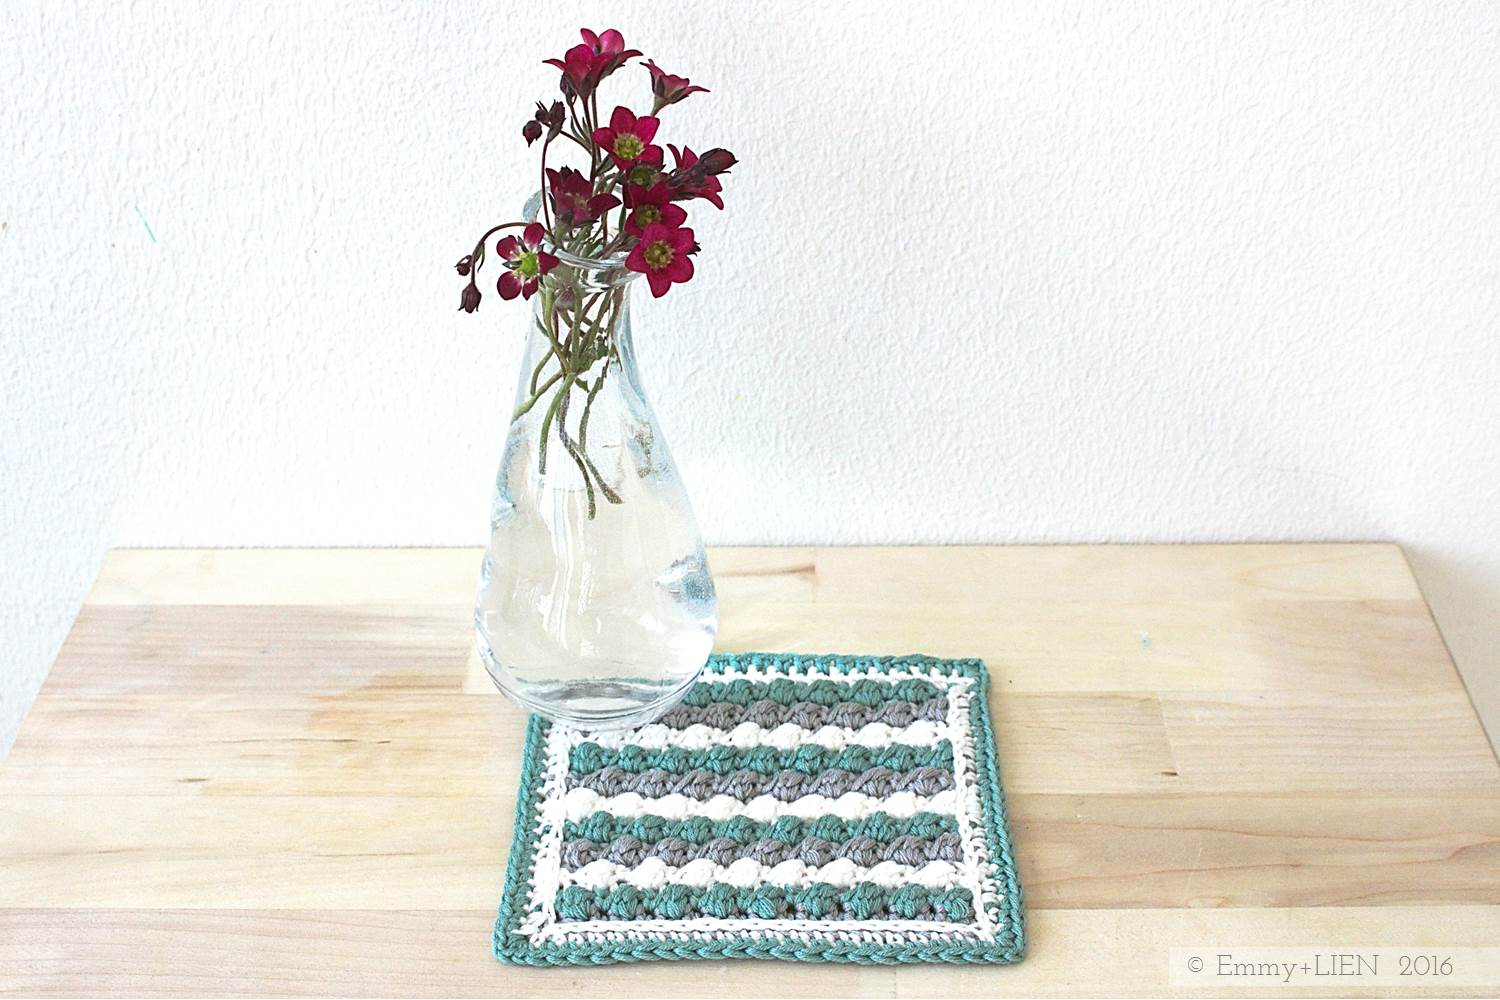 Raspberry Ripple Sampler Square | step-by-step photo tutorial for the Uneven Berry crochet stitch | Emmy + LIEN blog